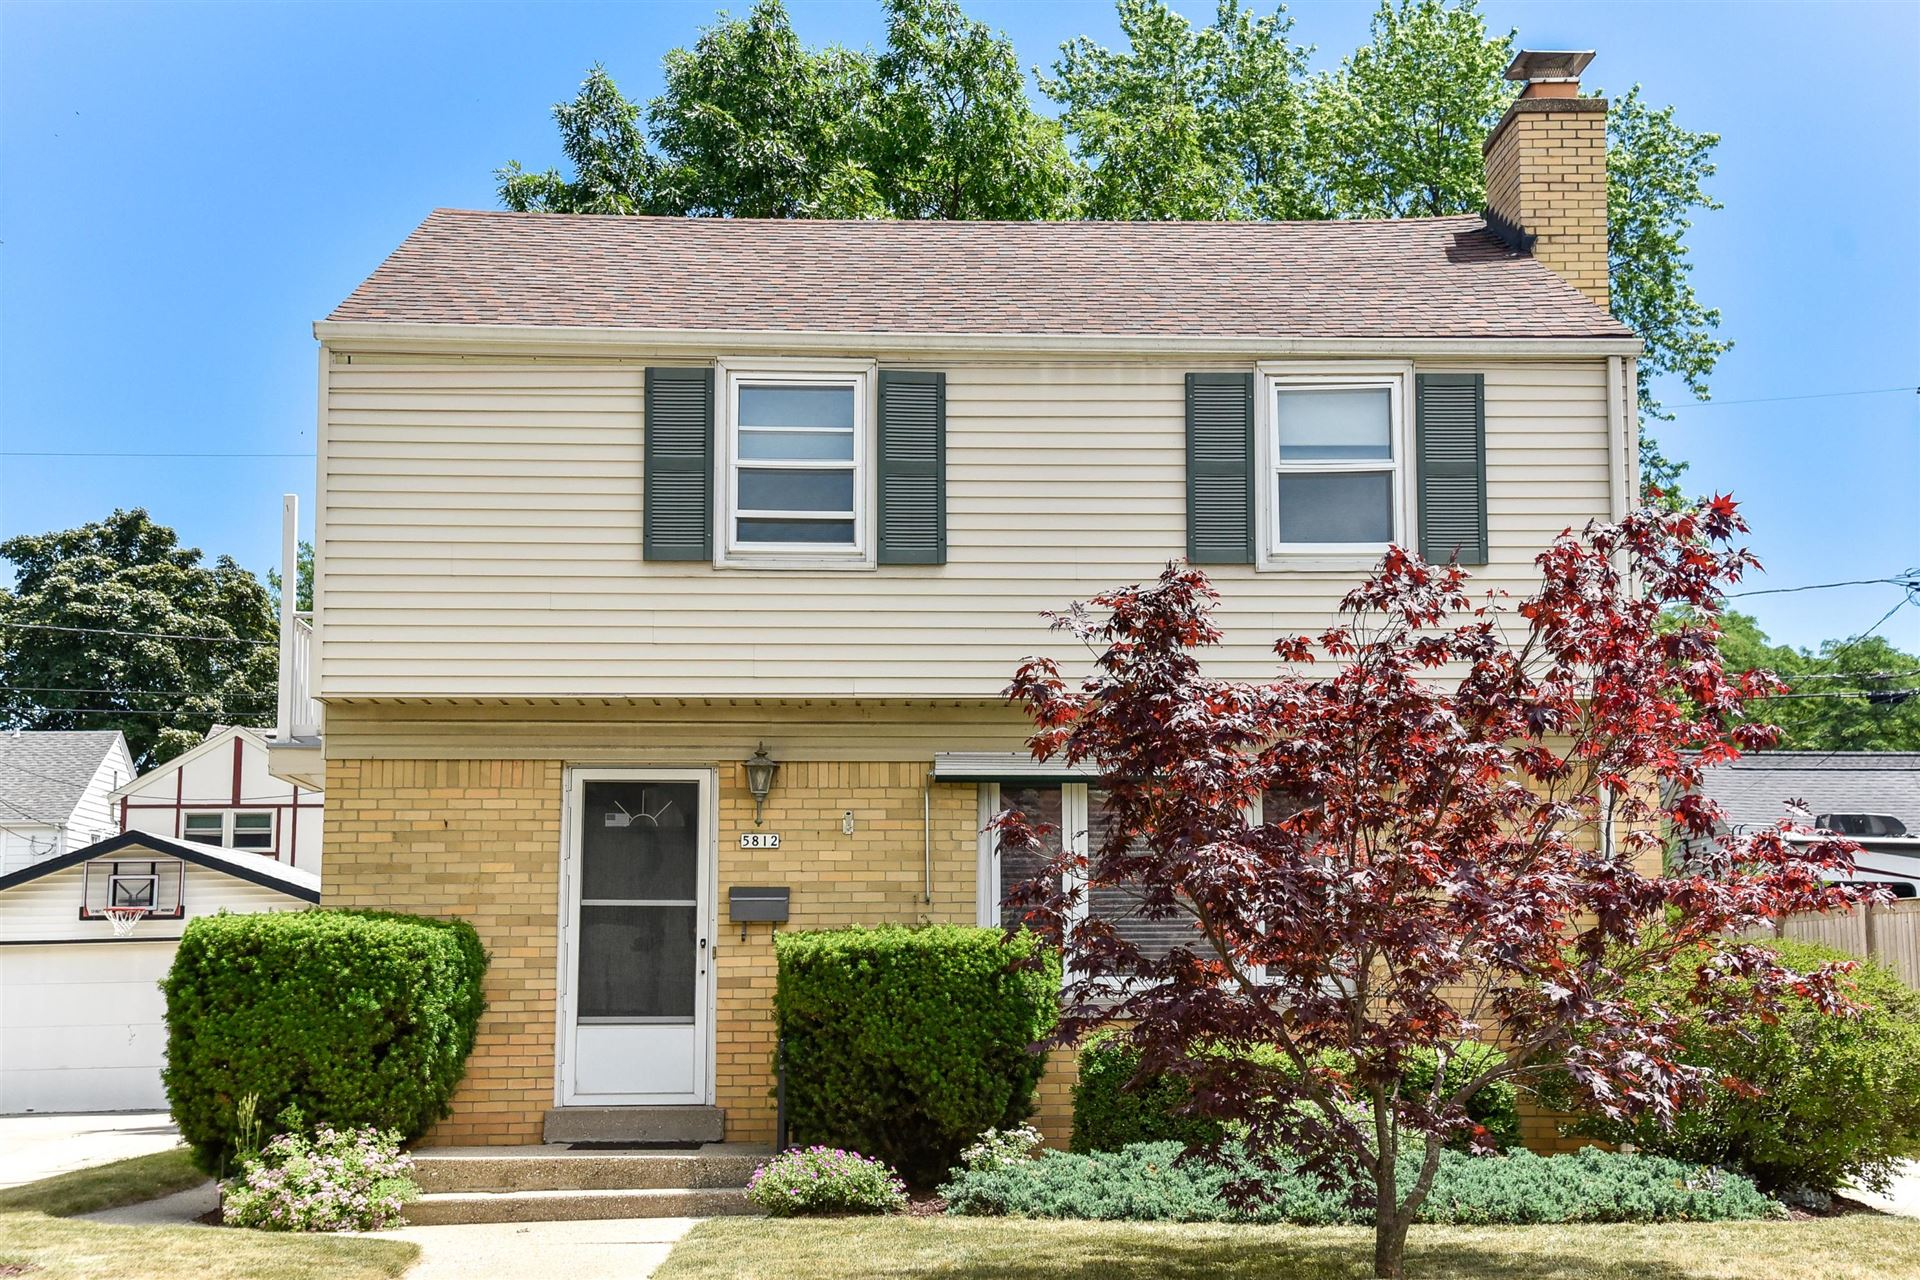 5812 N Lydell Ave, Whitefish Bay, WI 53217 - MLS#: 1746648